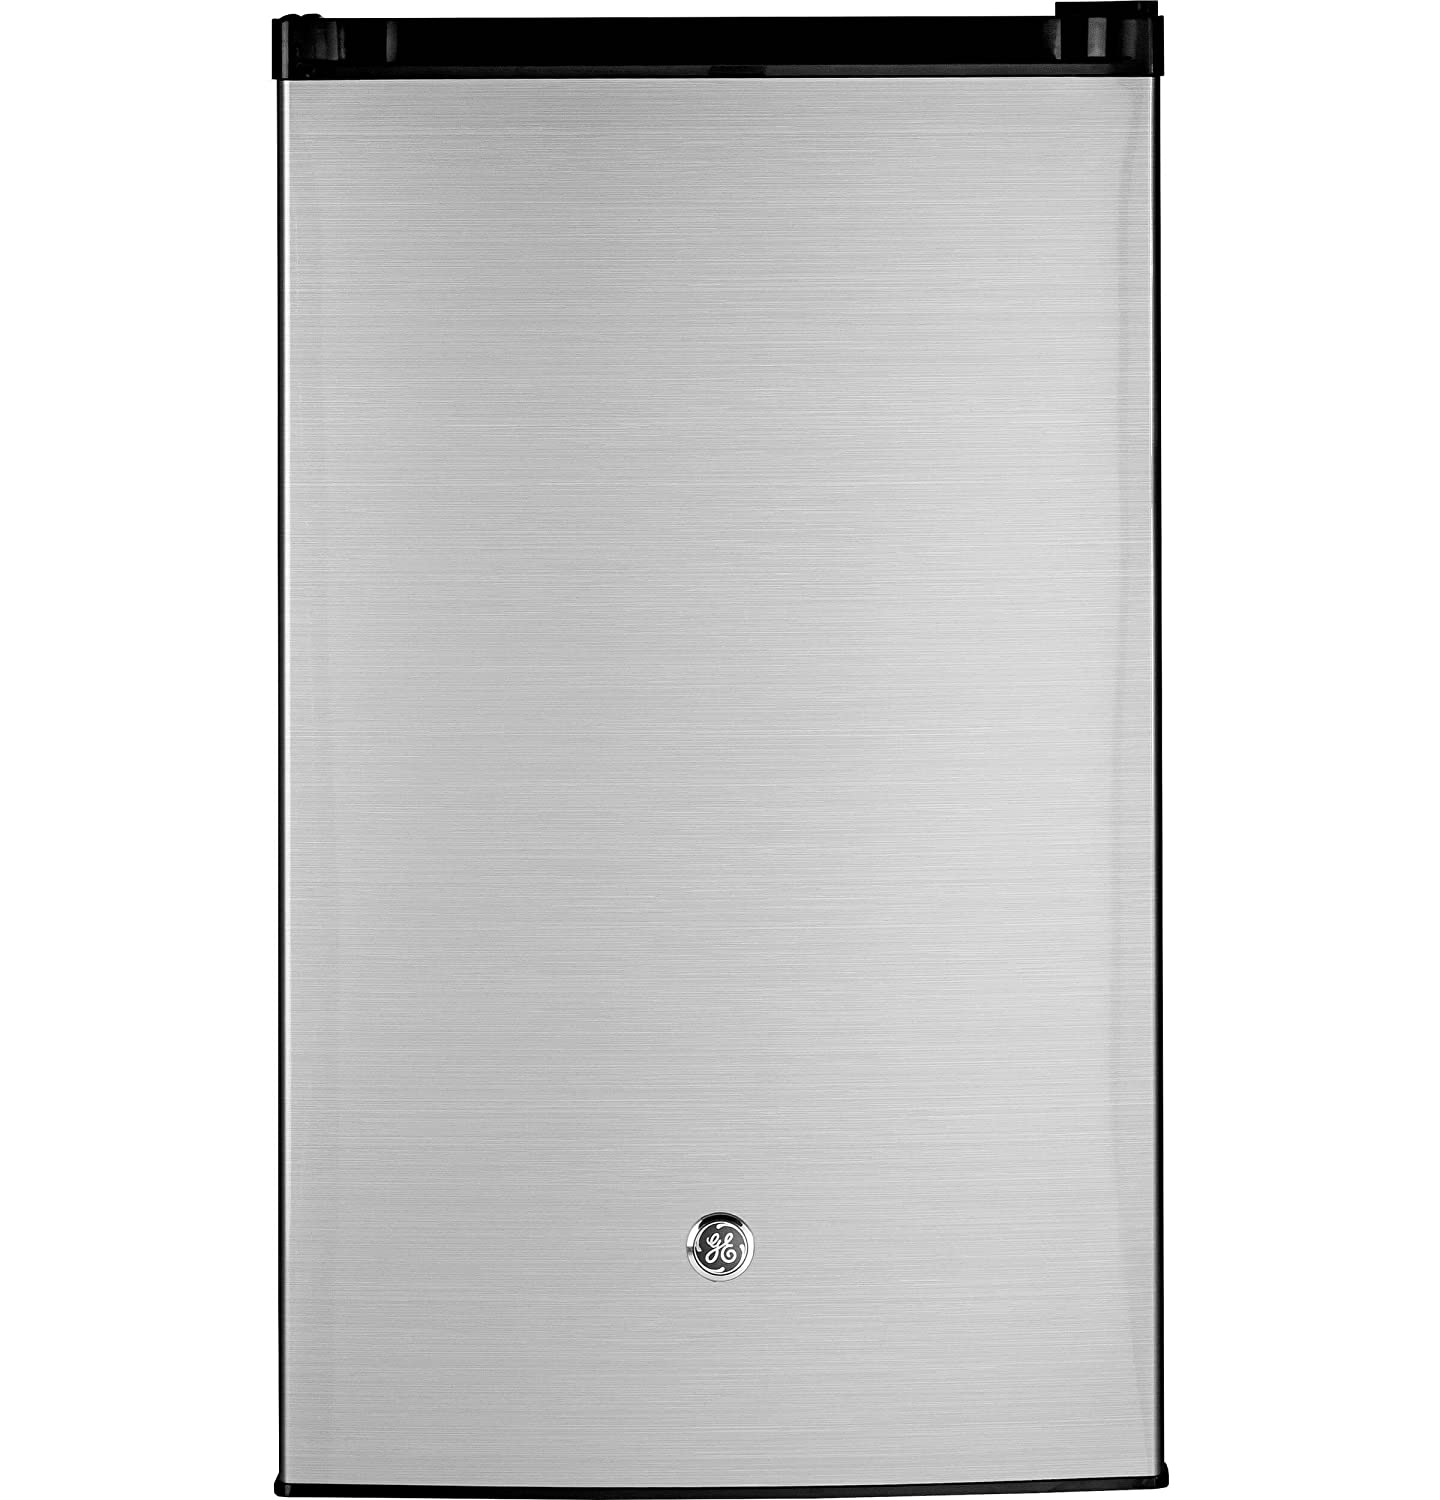 GE GME04GLKLB CleanSteel Compact Refrigerator